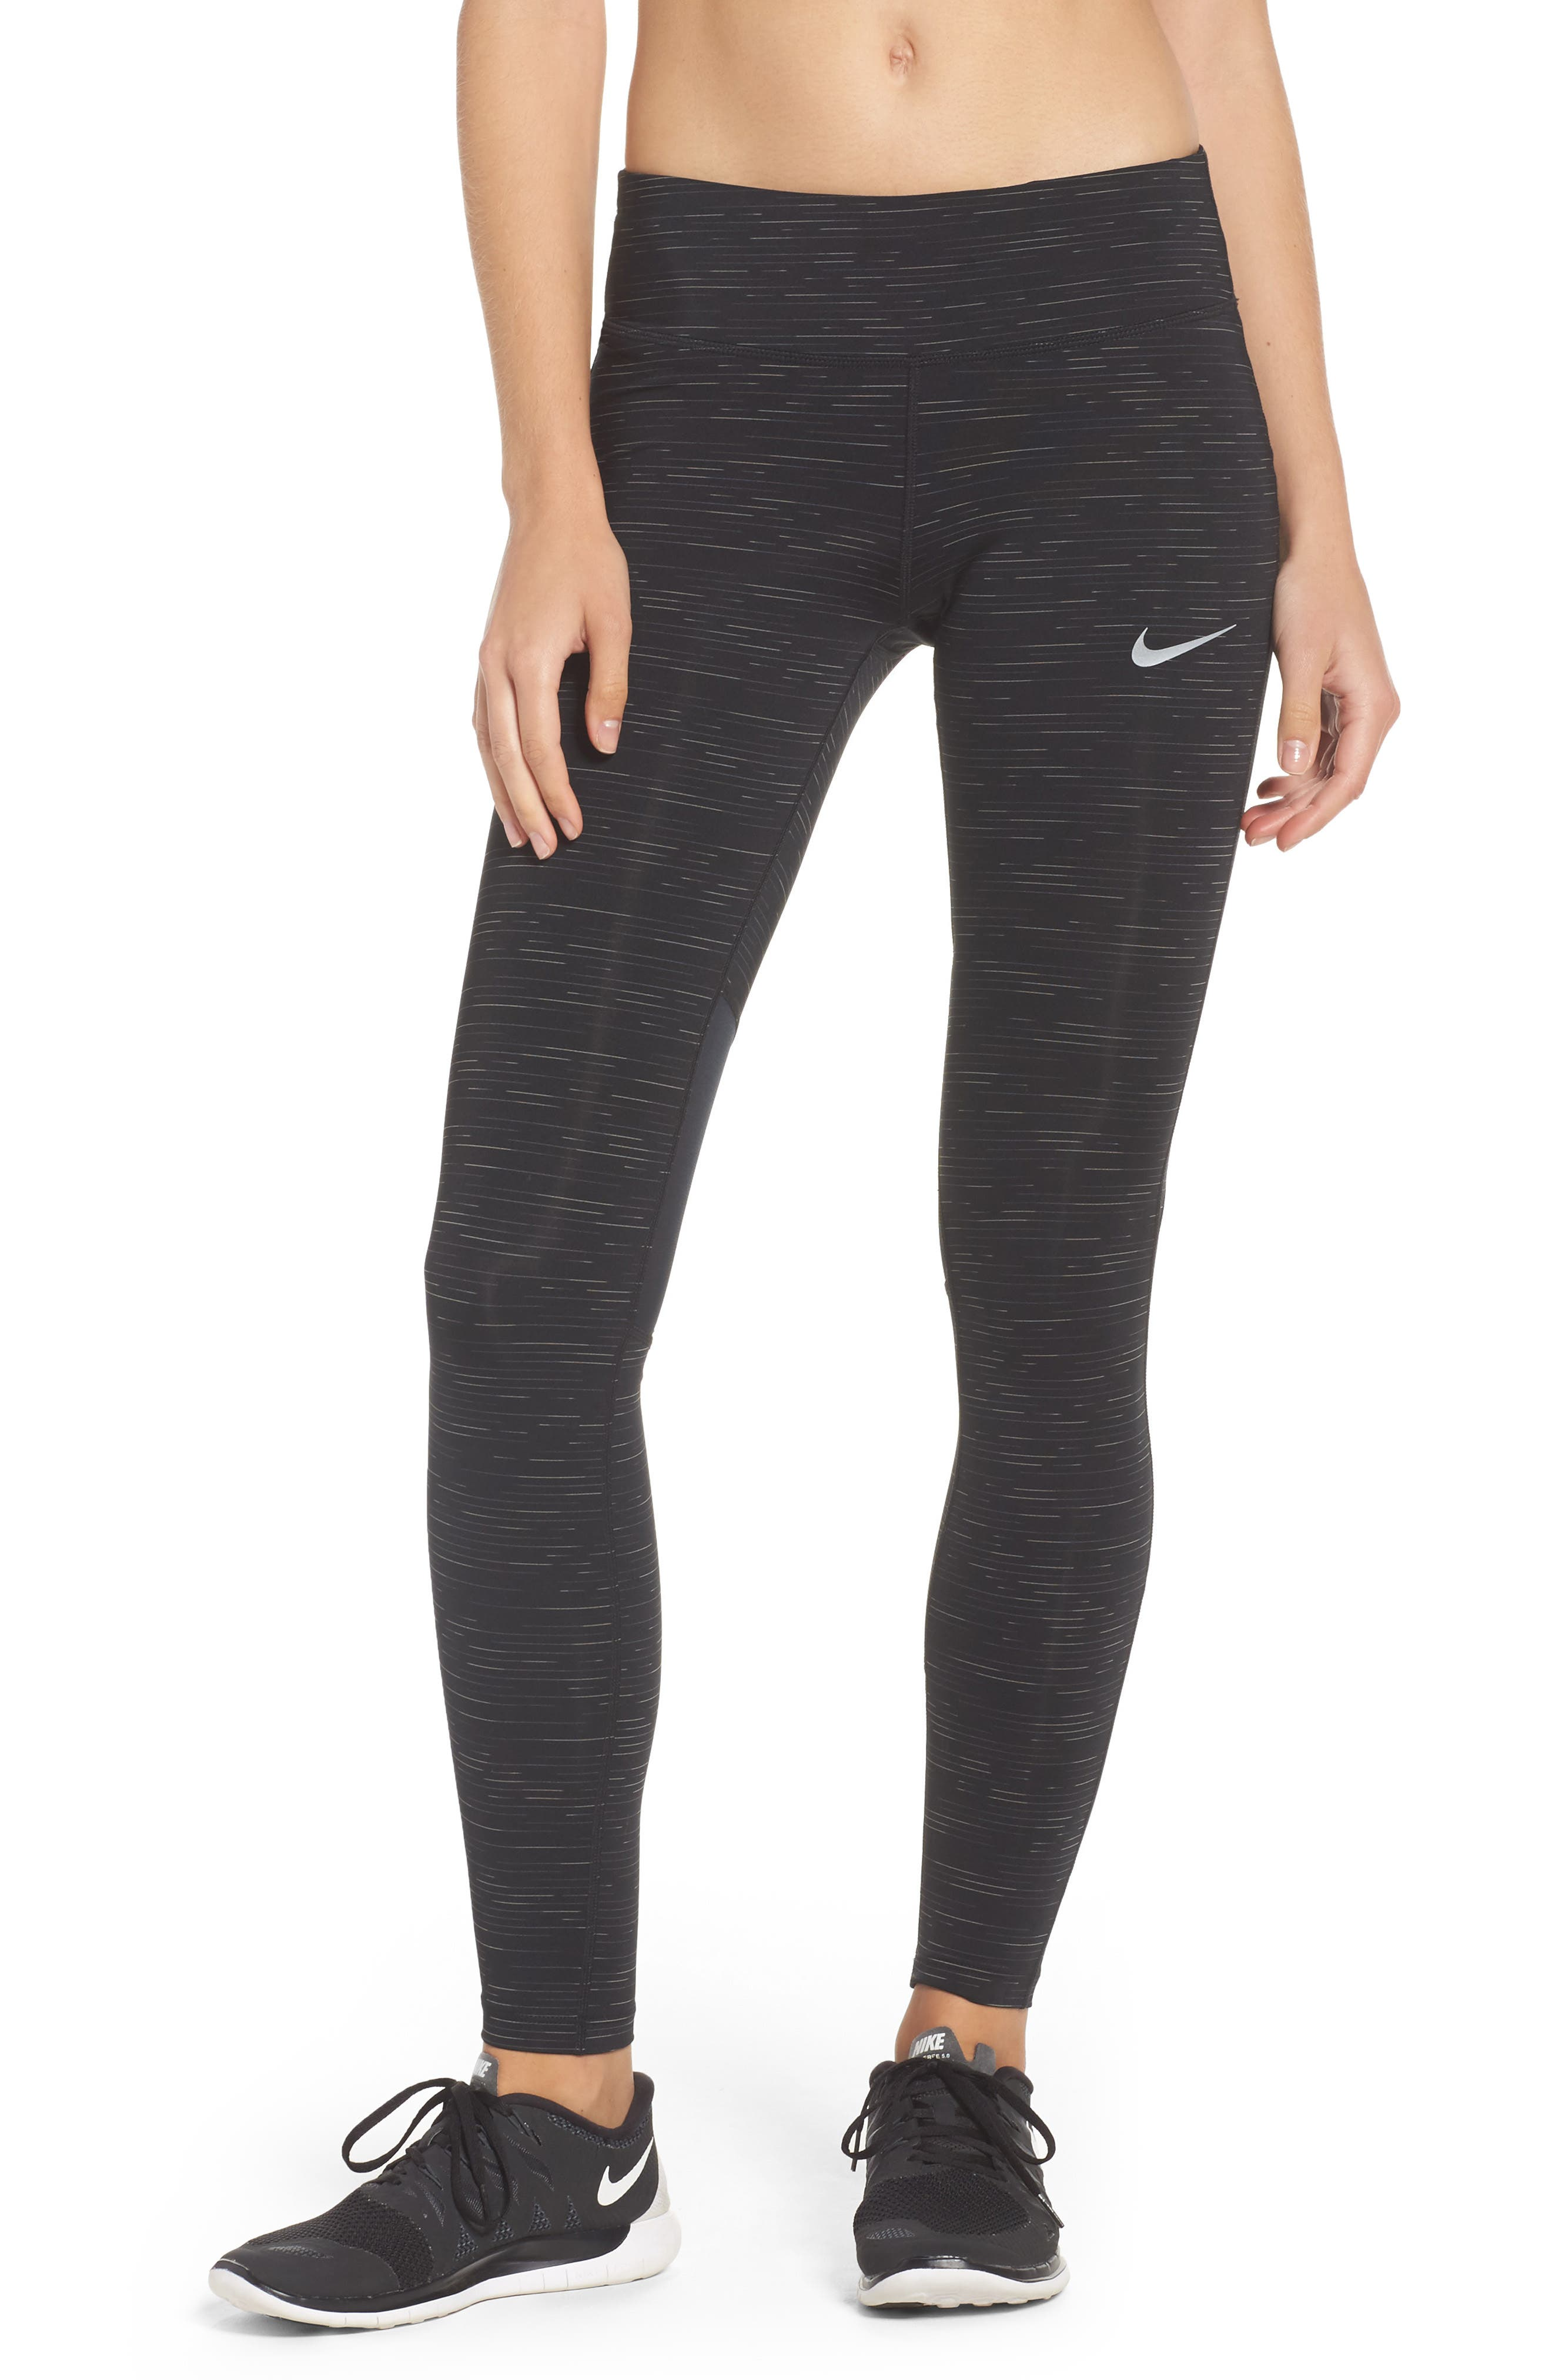 Alternate Image 1 Selected - Nike Power Epic Lux Running Tights